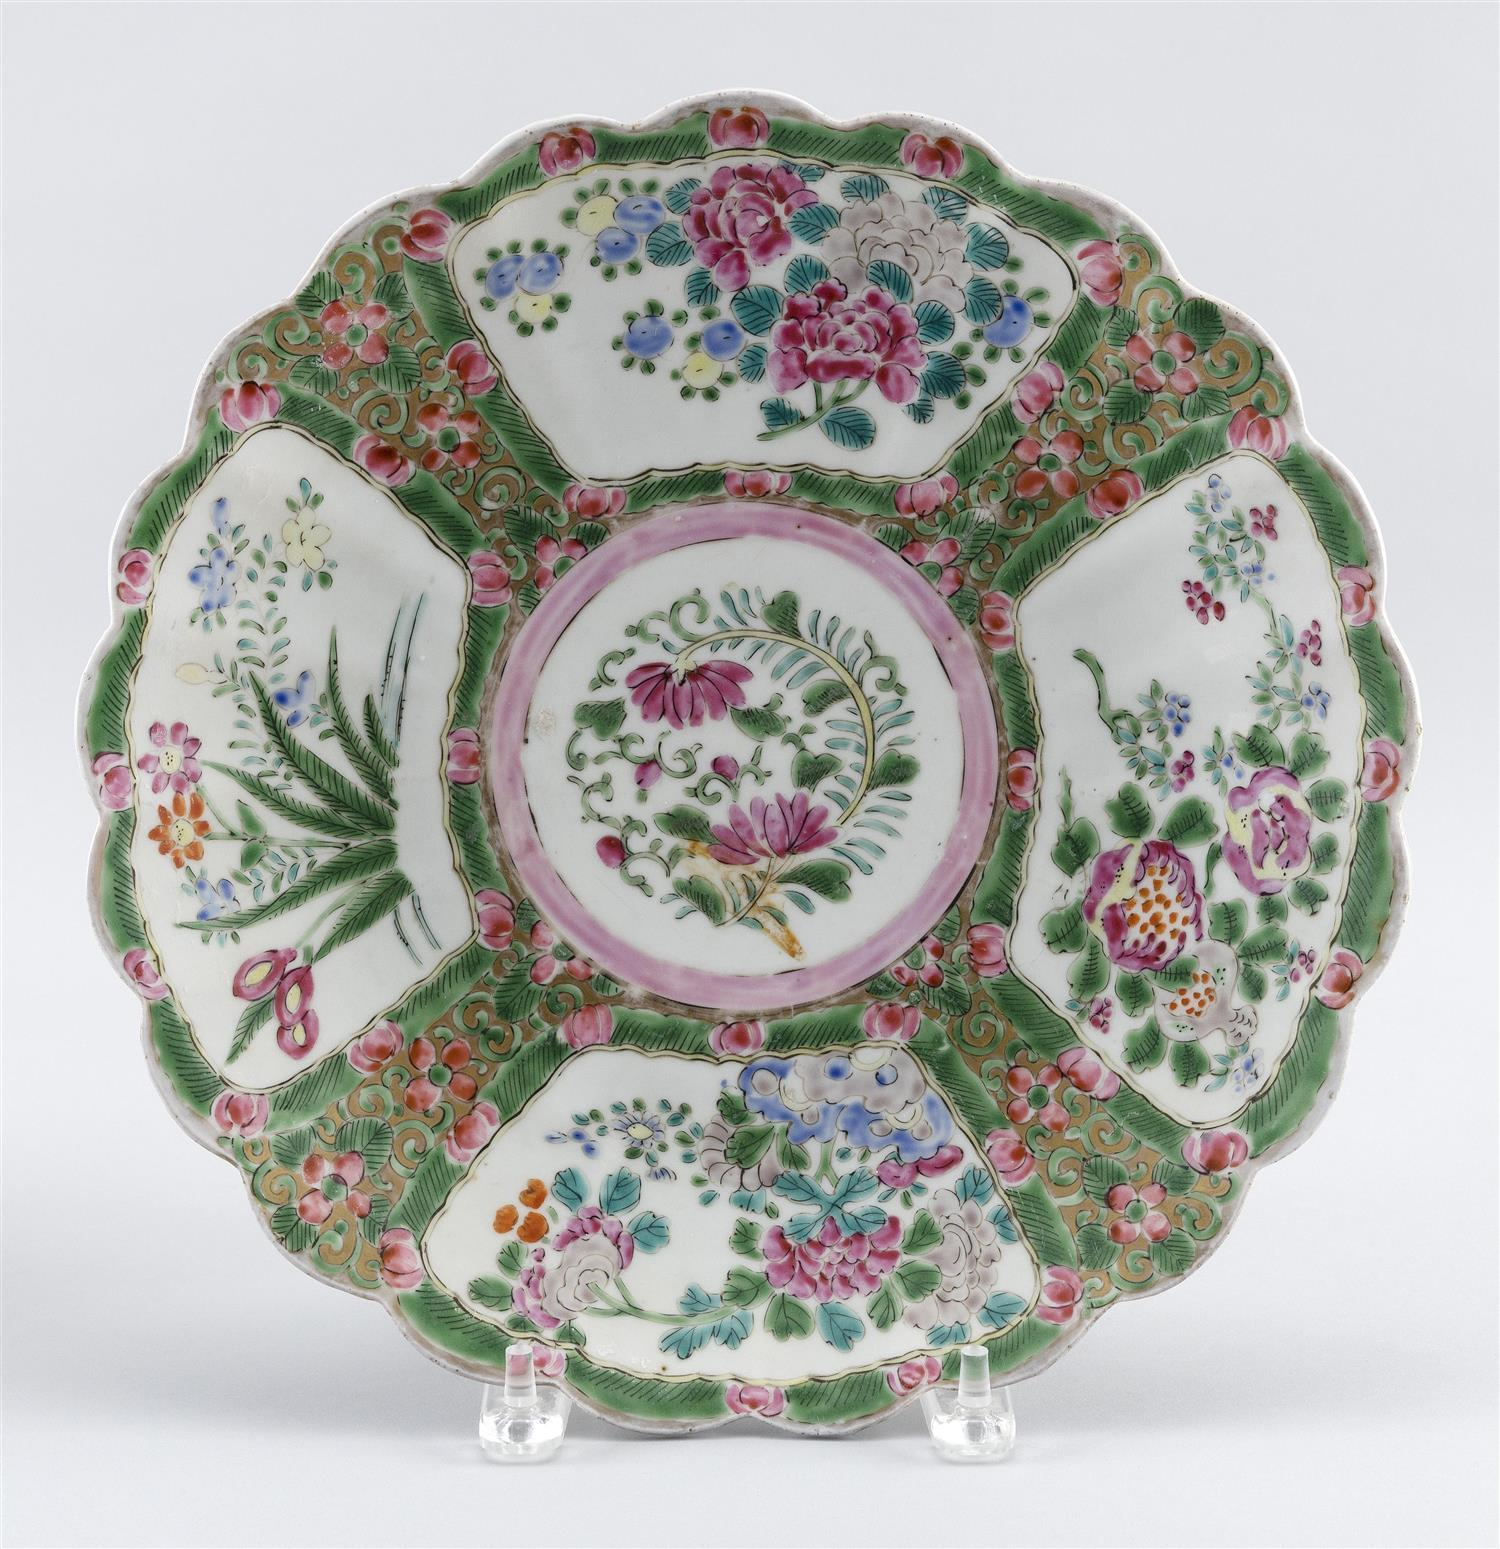 "CHINESE PORCELAIN FLORIFORM CHARGER With floral decoration. Six-character mark on base. Diameter 12.5""."